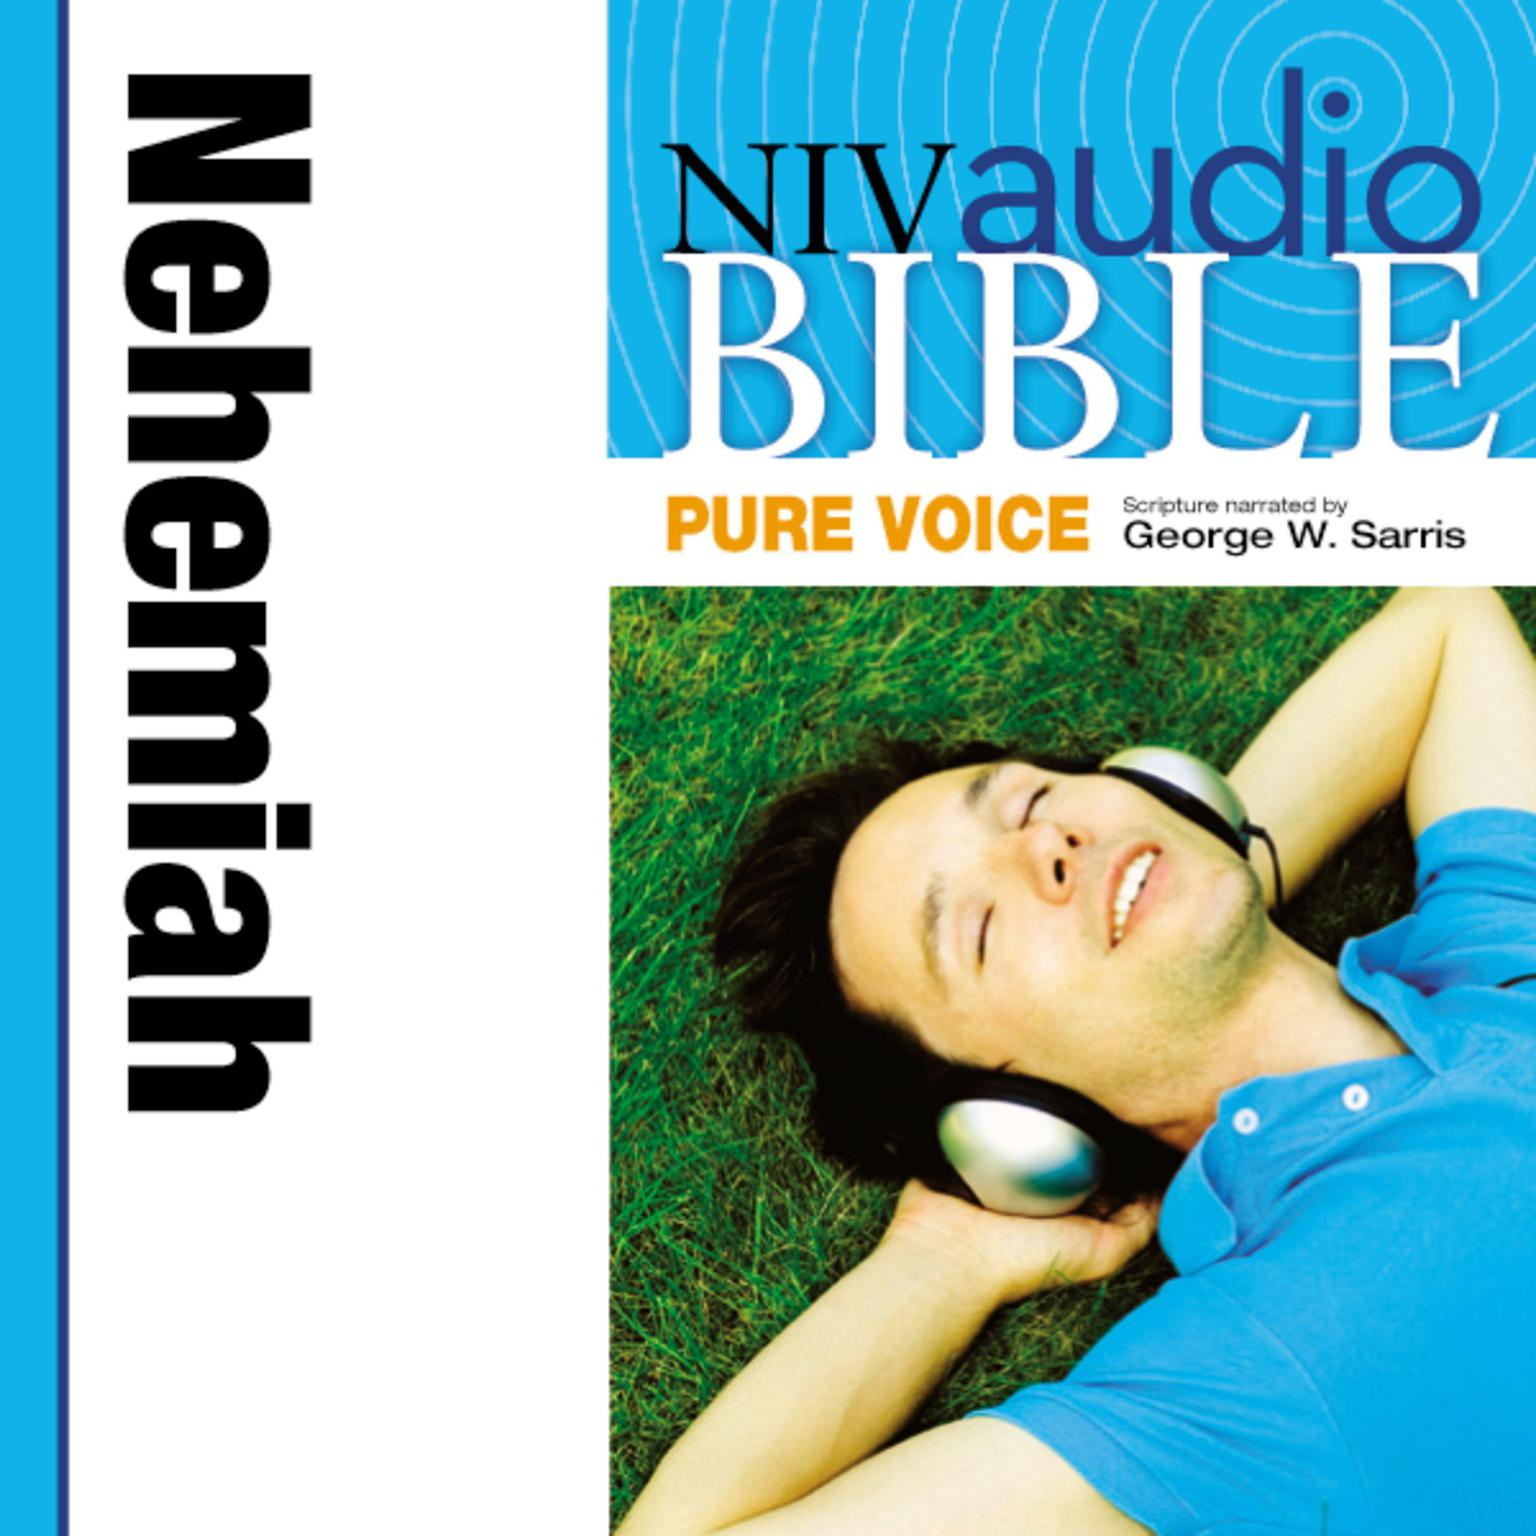 Printable NIV, Audio Bible, Pure Voice: Nehemiah, Audio Download (Narrated by George W. Sarris) Audiobook Cover Art